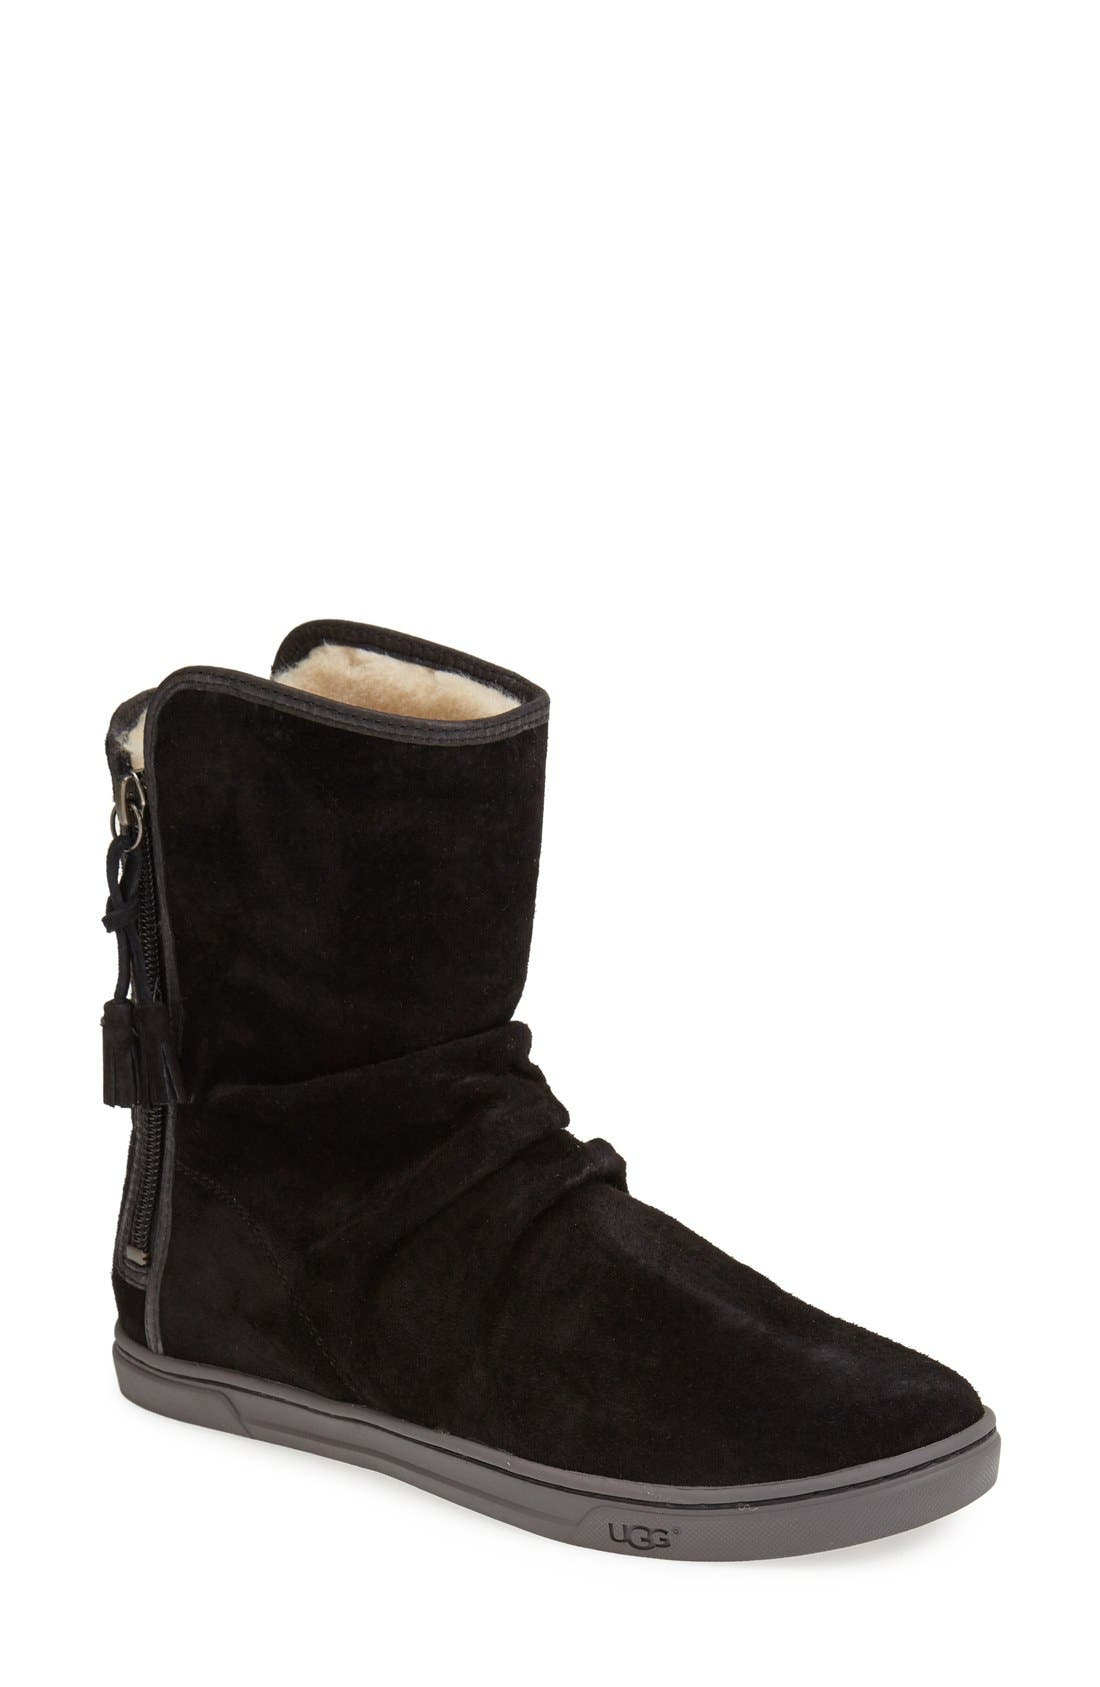 Australia 'Becky' Water Resistant Suede Boot,                         Main,                         color, 001